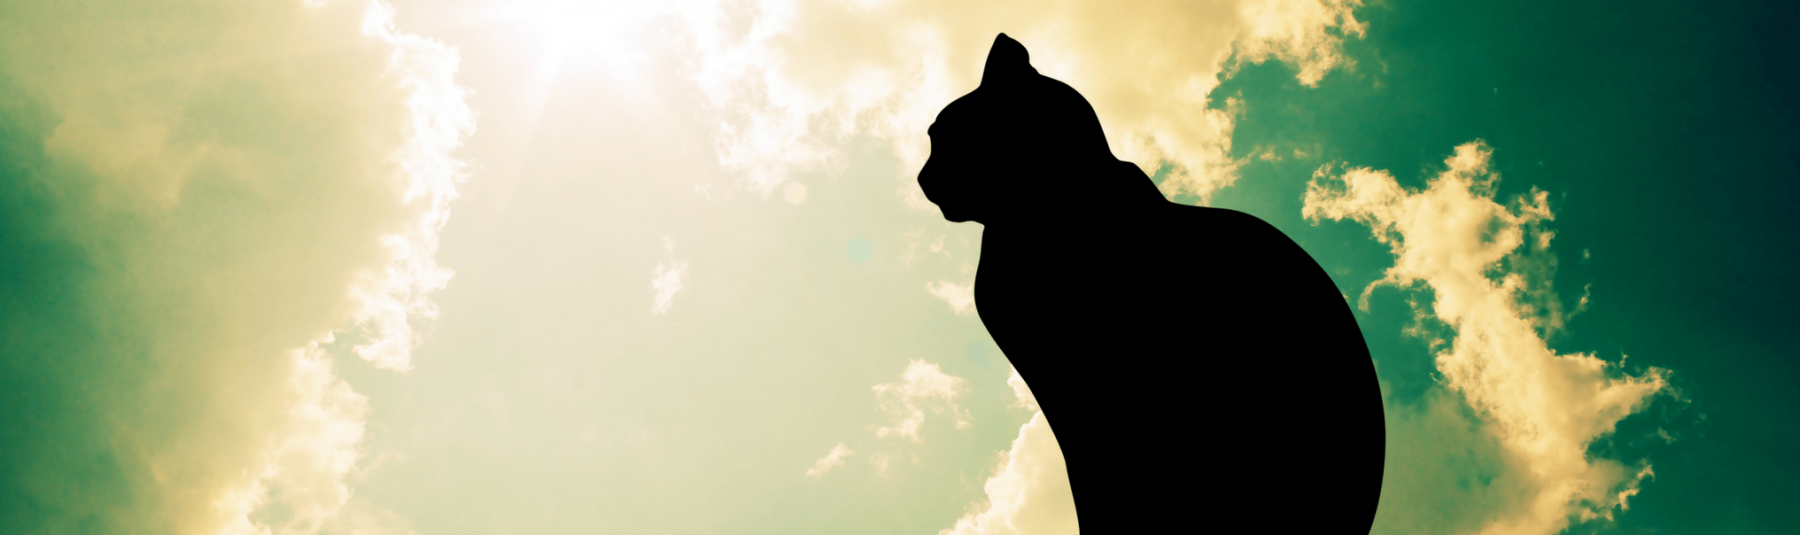 Silhouette of a cat in the sky